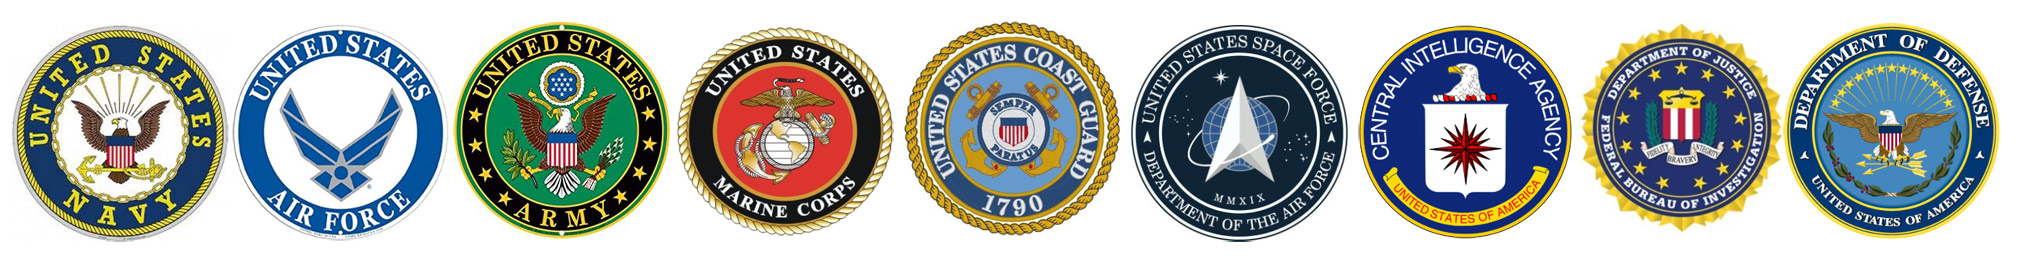 Government and military seals